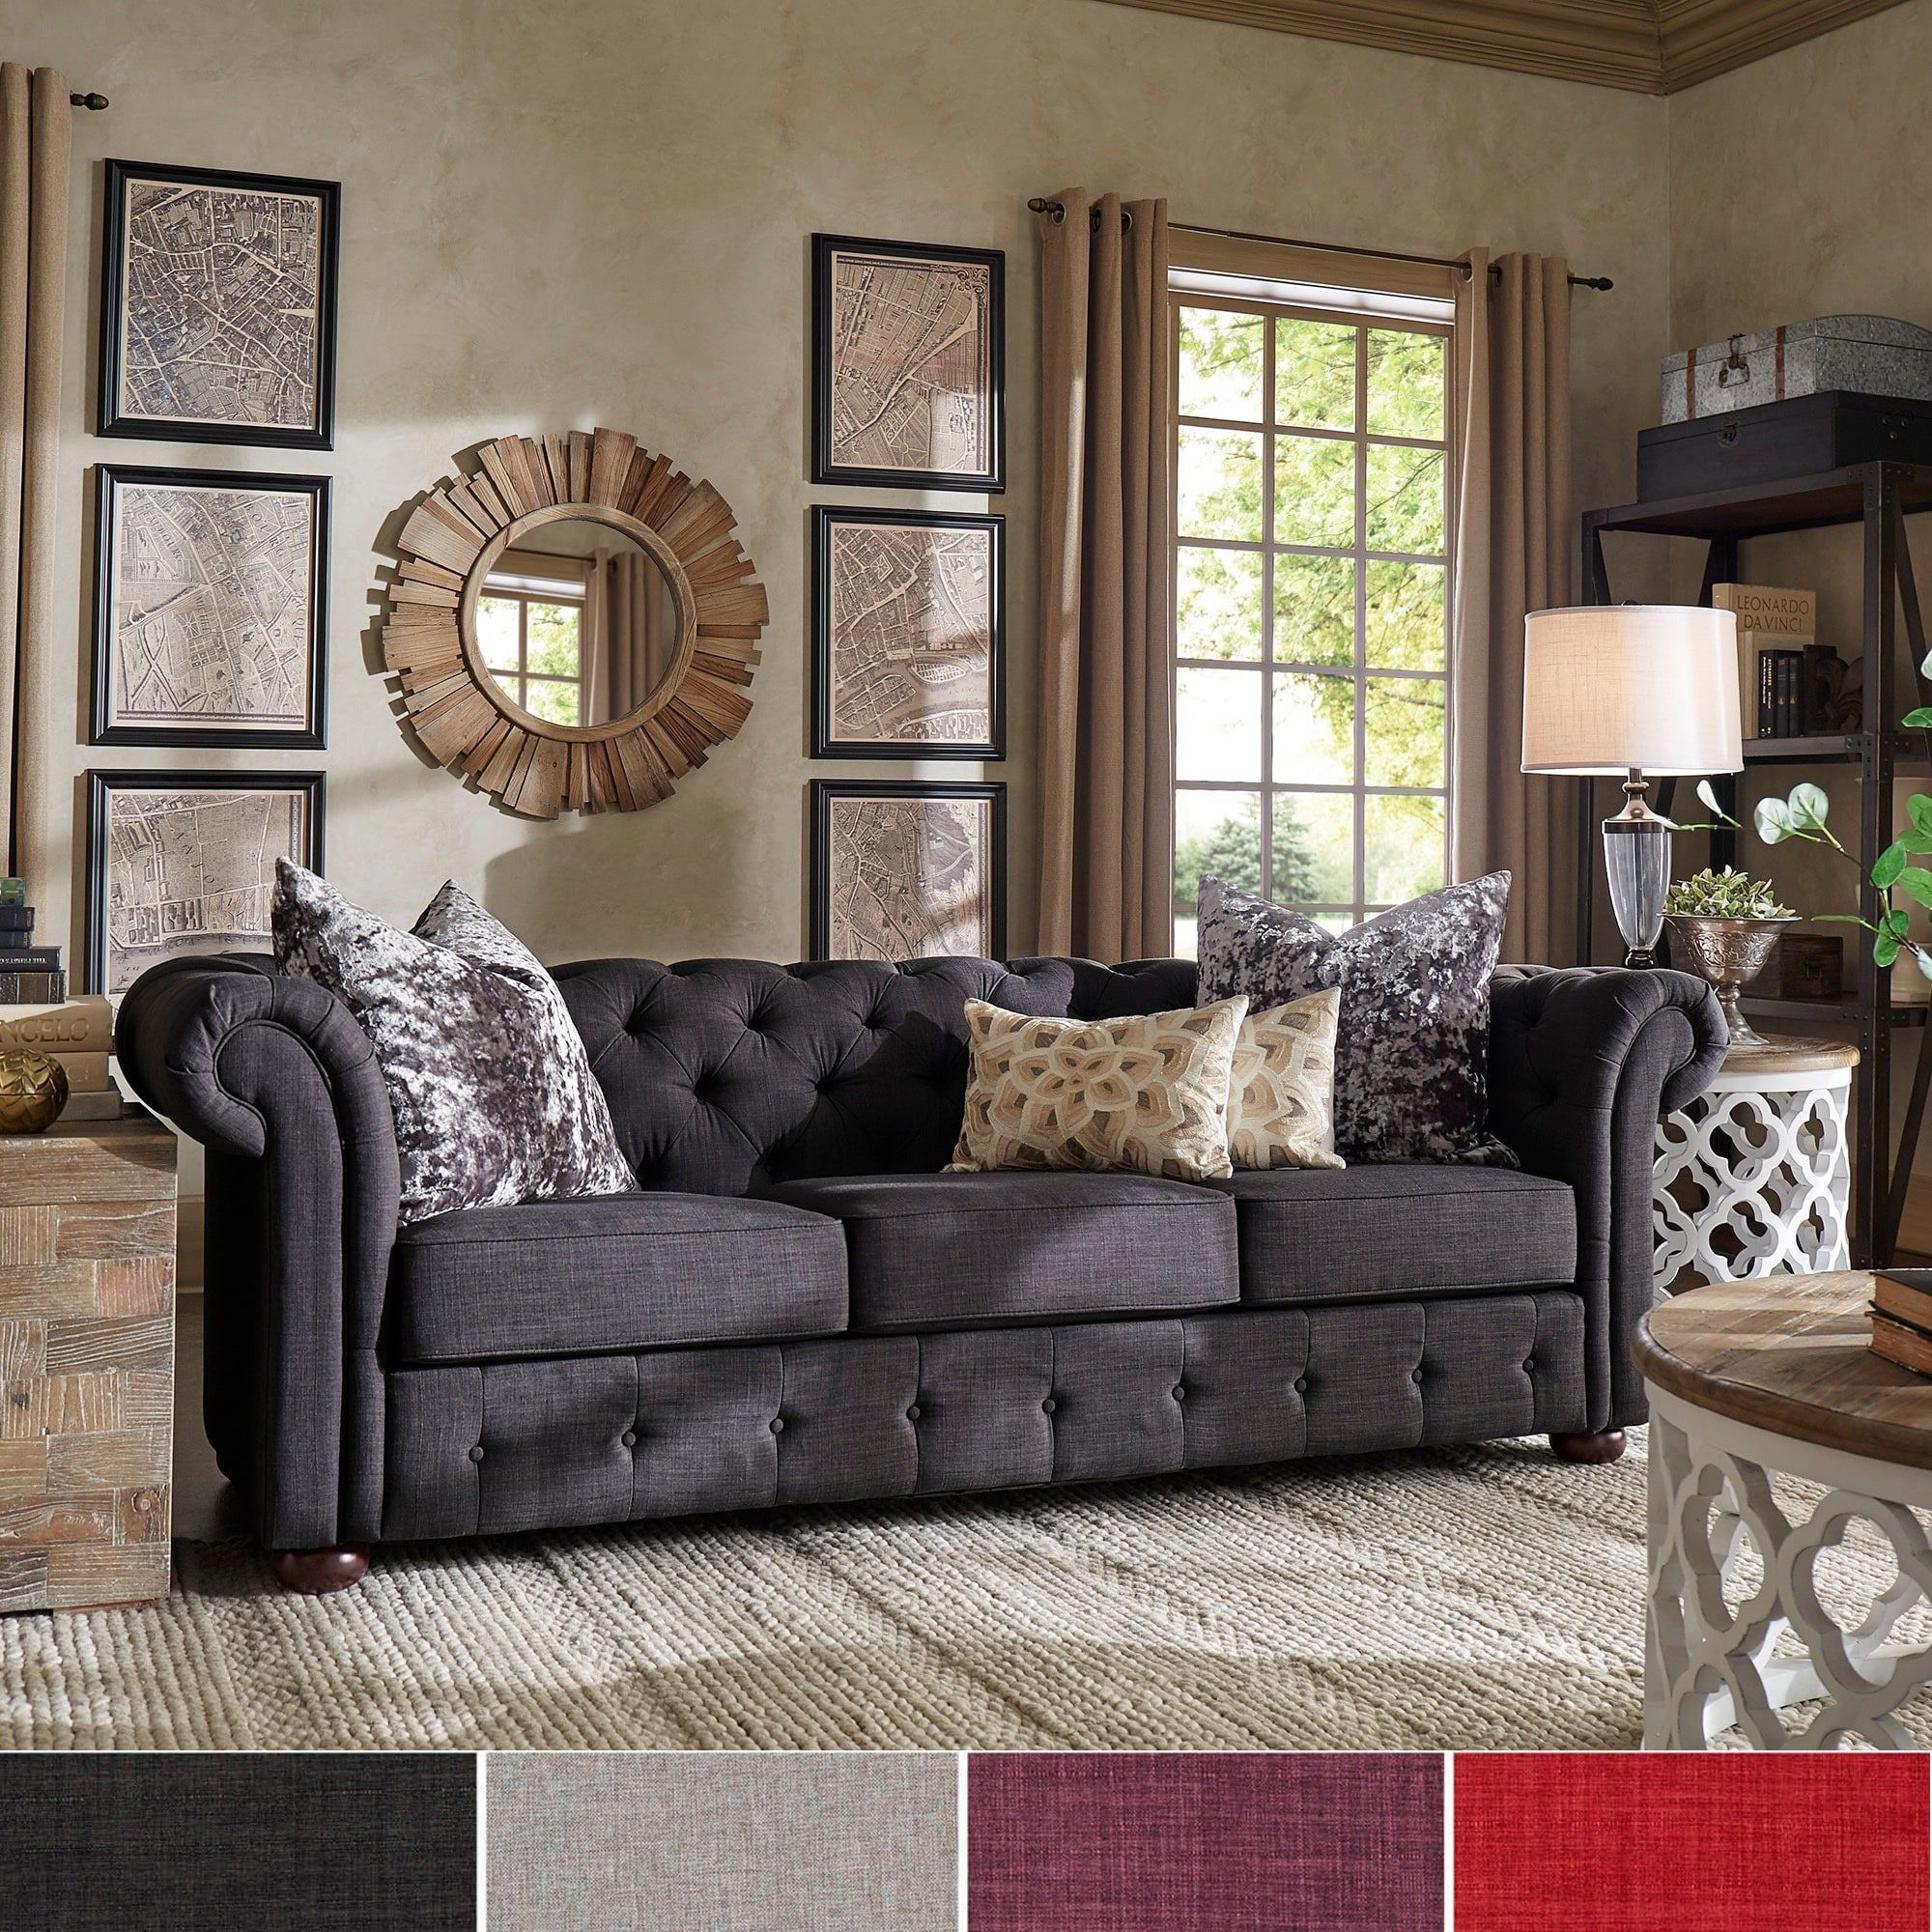 Chesterfield Sofa Living Room Ideas Knightsbridge Tufted Scroll Arm Chesterfield Sofa By